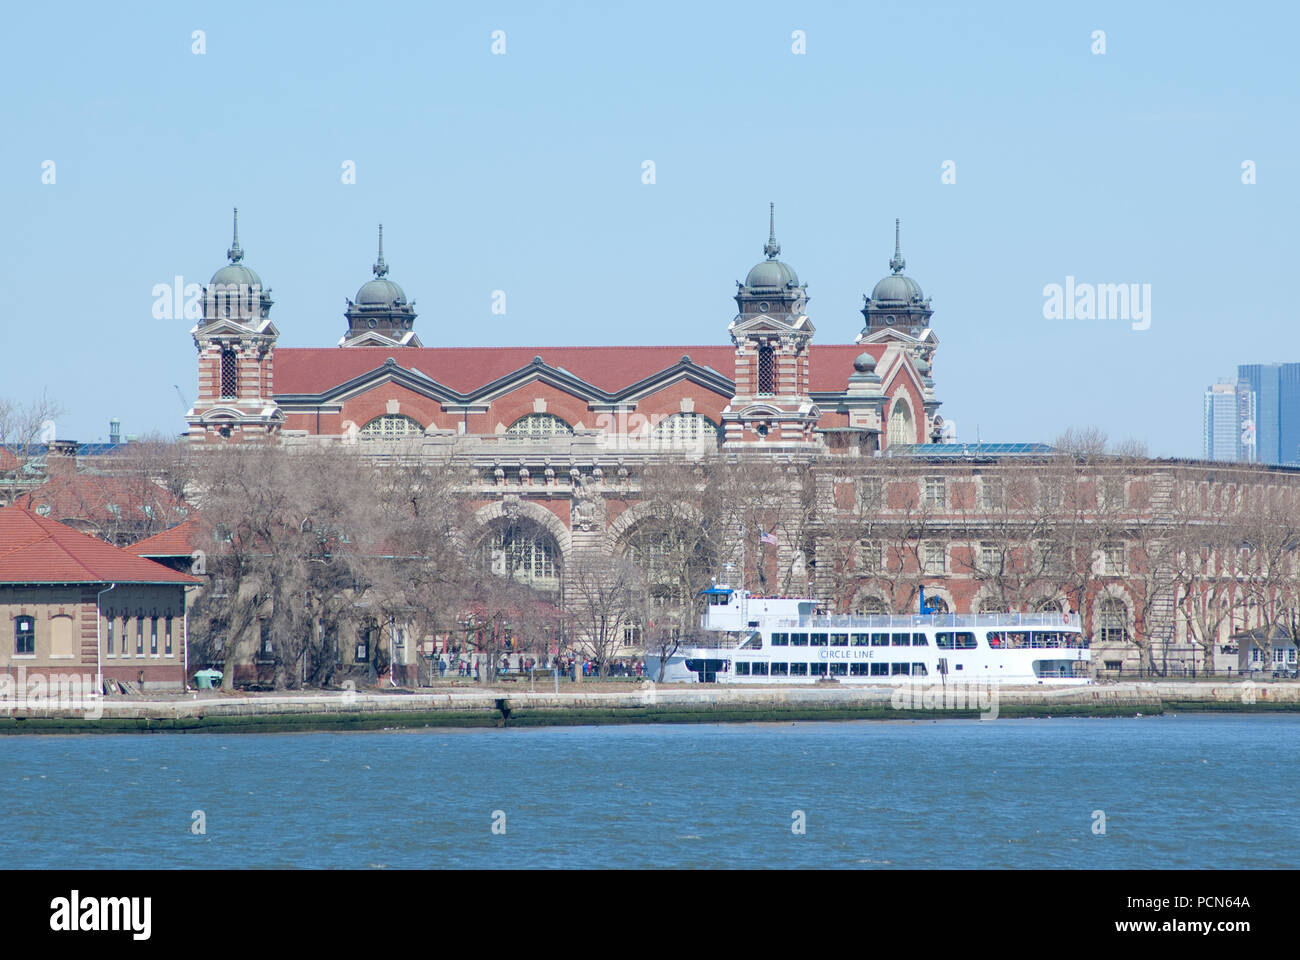 Ellis Island in New York Harbor - Stock Image